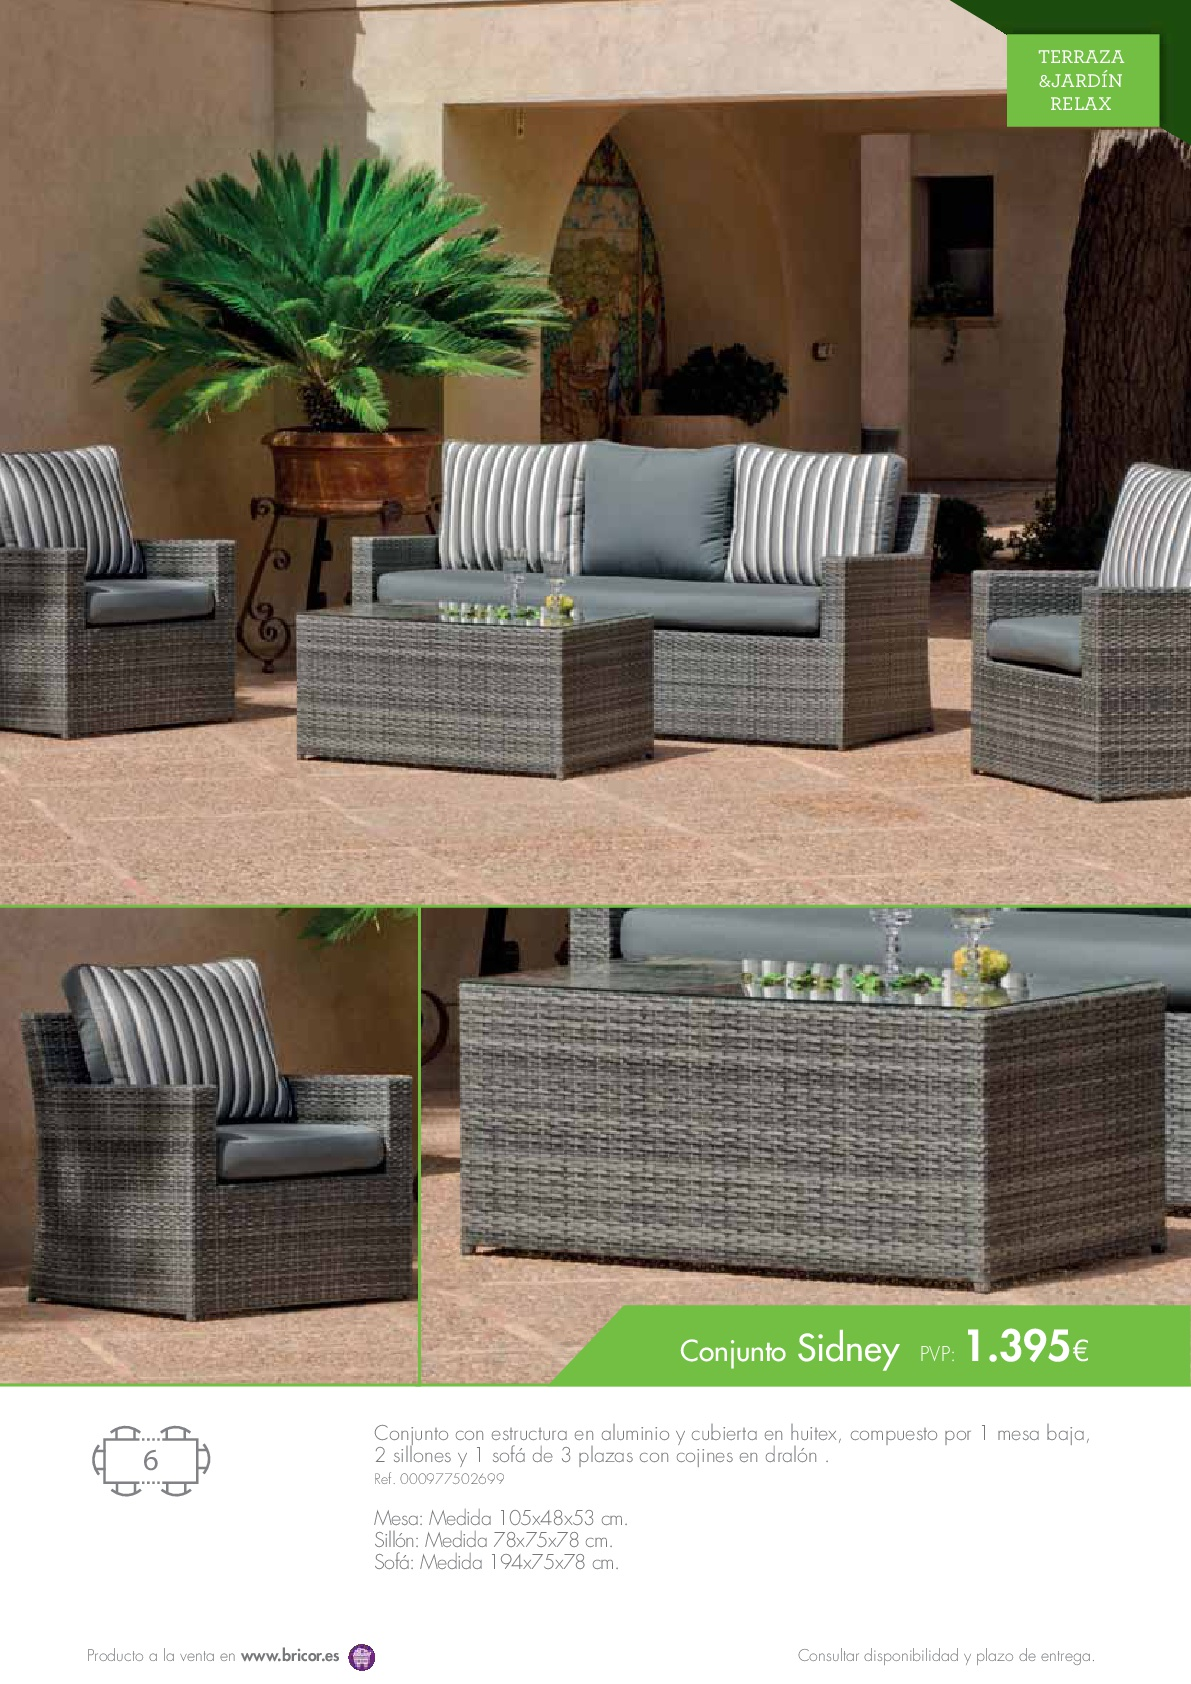 Bricor muebles jardin 201657 revista muebles for Revista jardin 2016